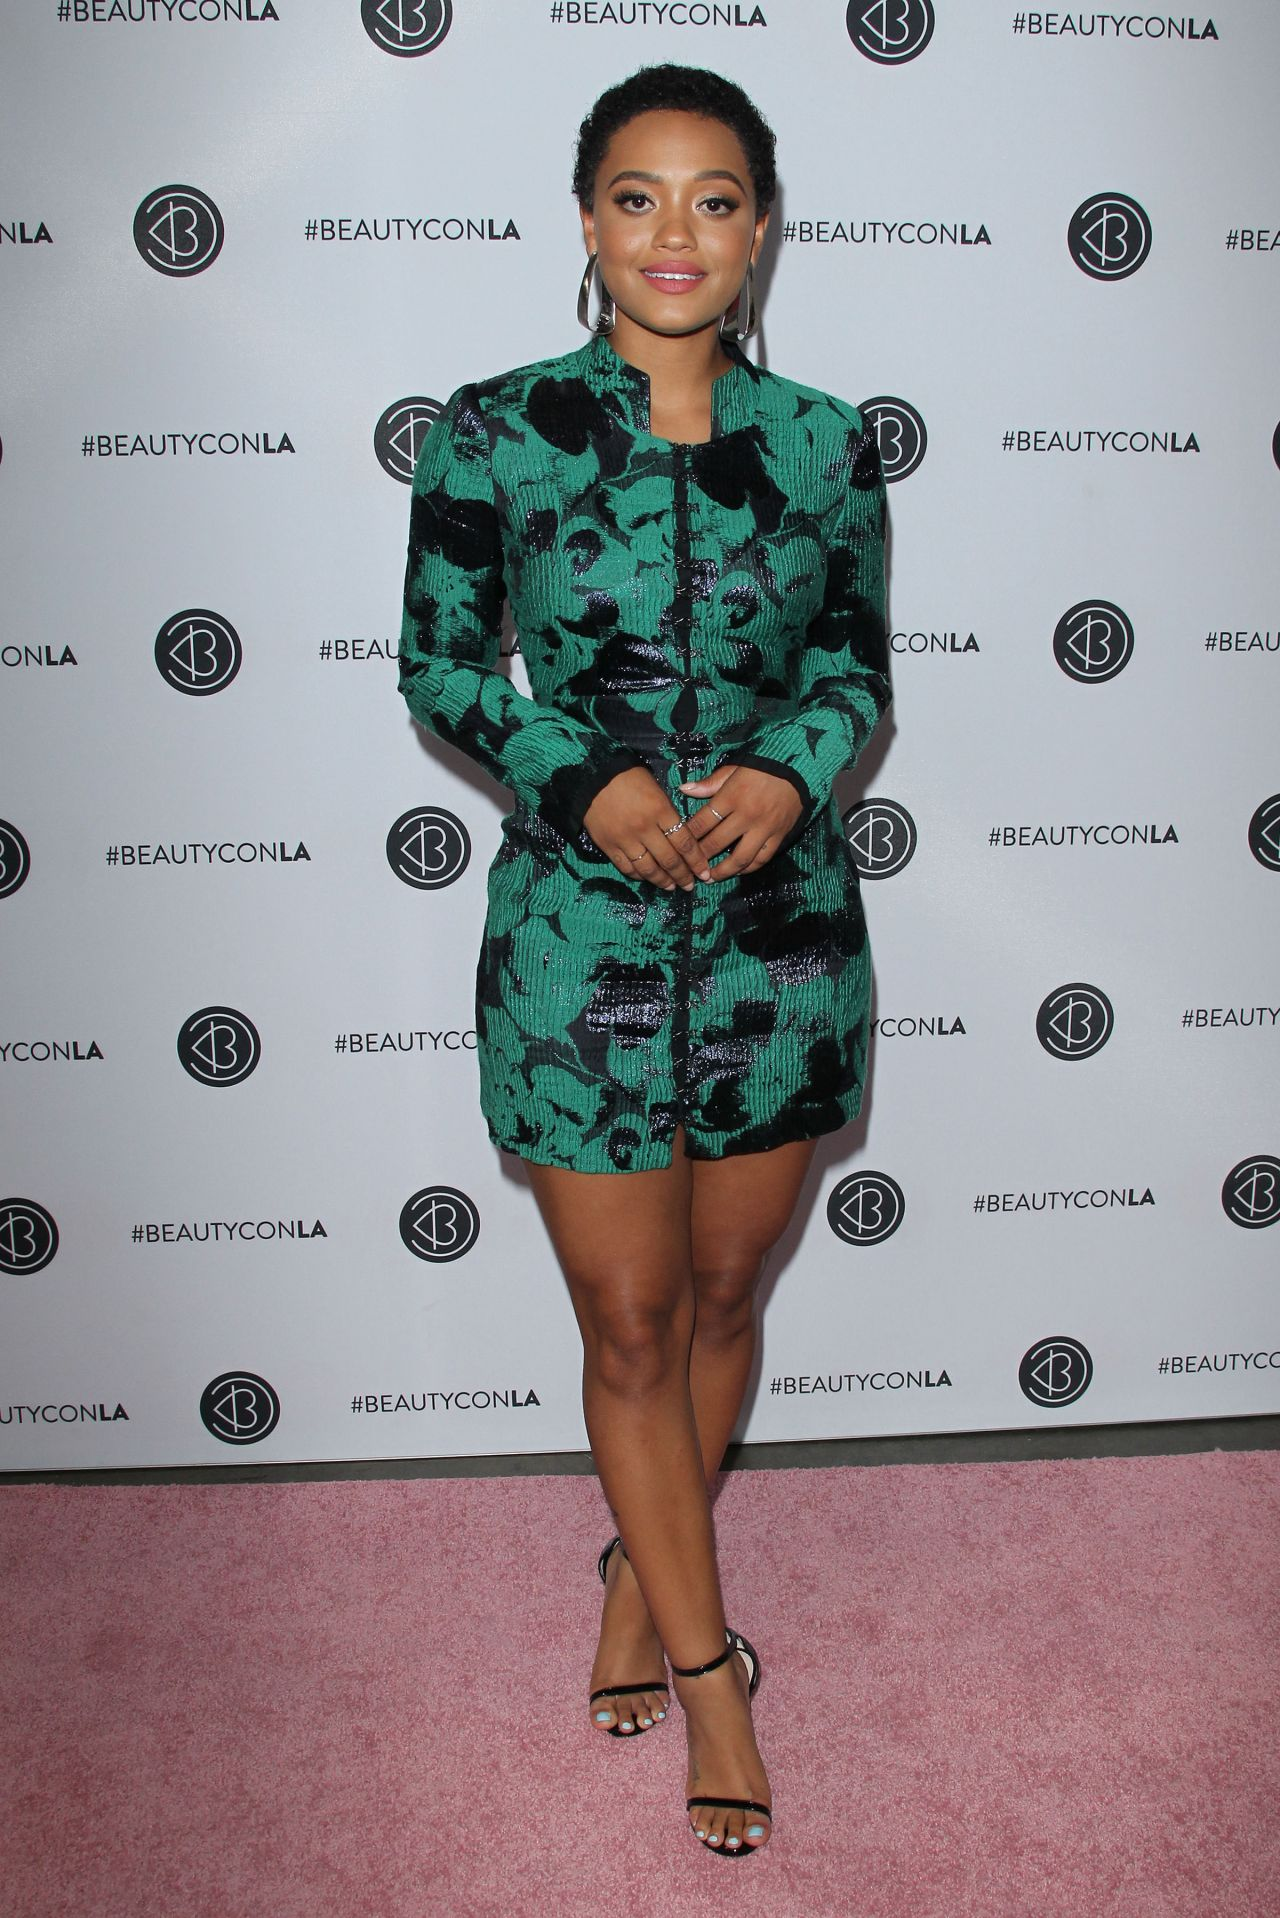 Discussion on this topic: Gina Ravera, kiersey-clemons/